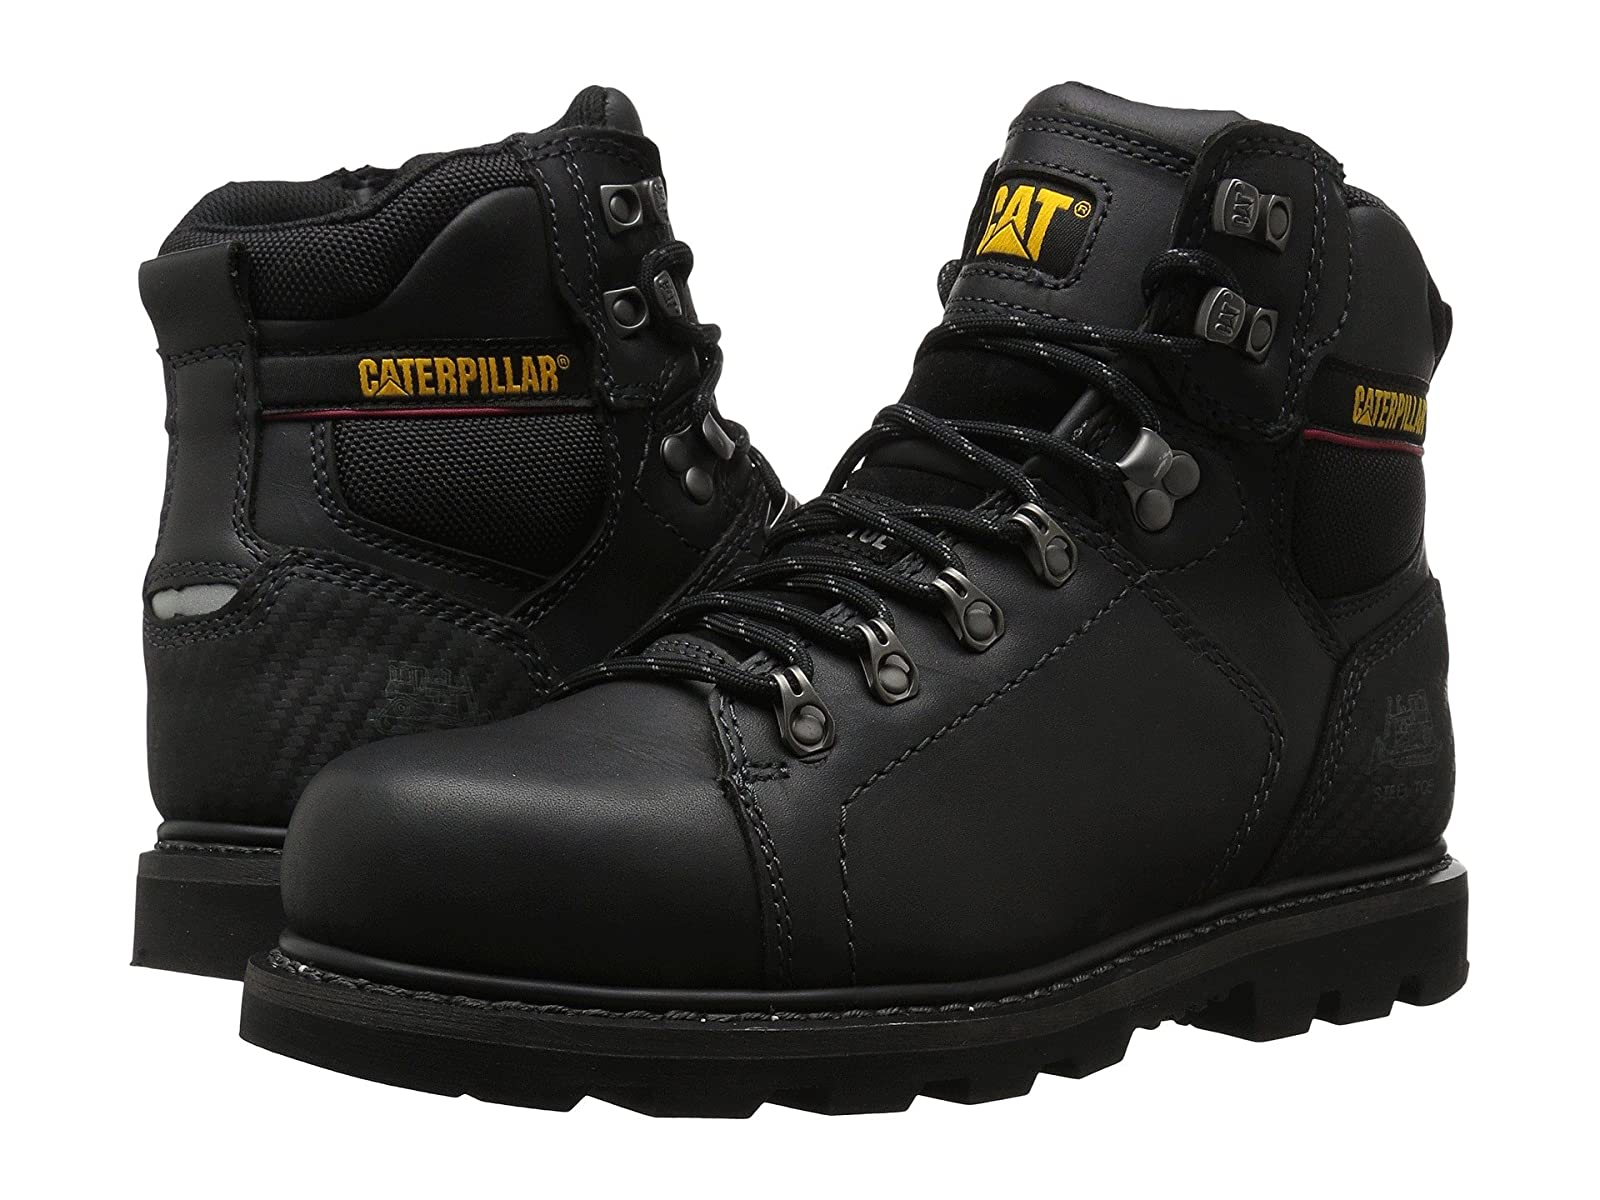 Caterpillar Alaska 2.0 Steel ToeSelling fashionable and eye-catching shoes